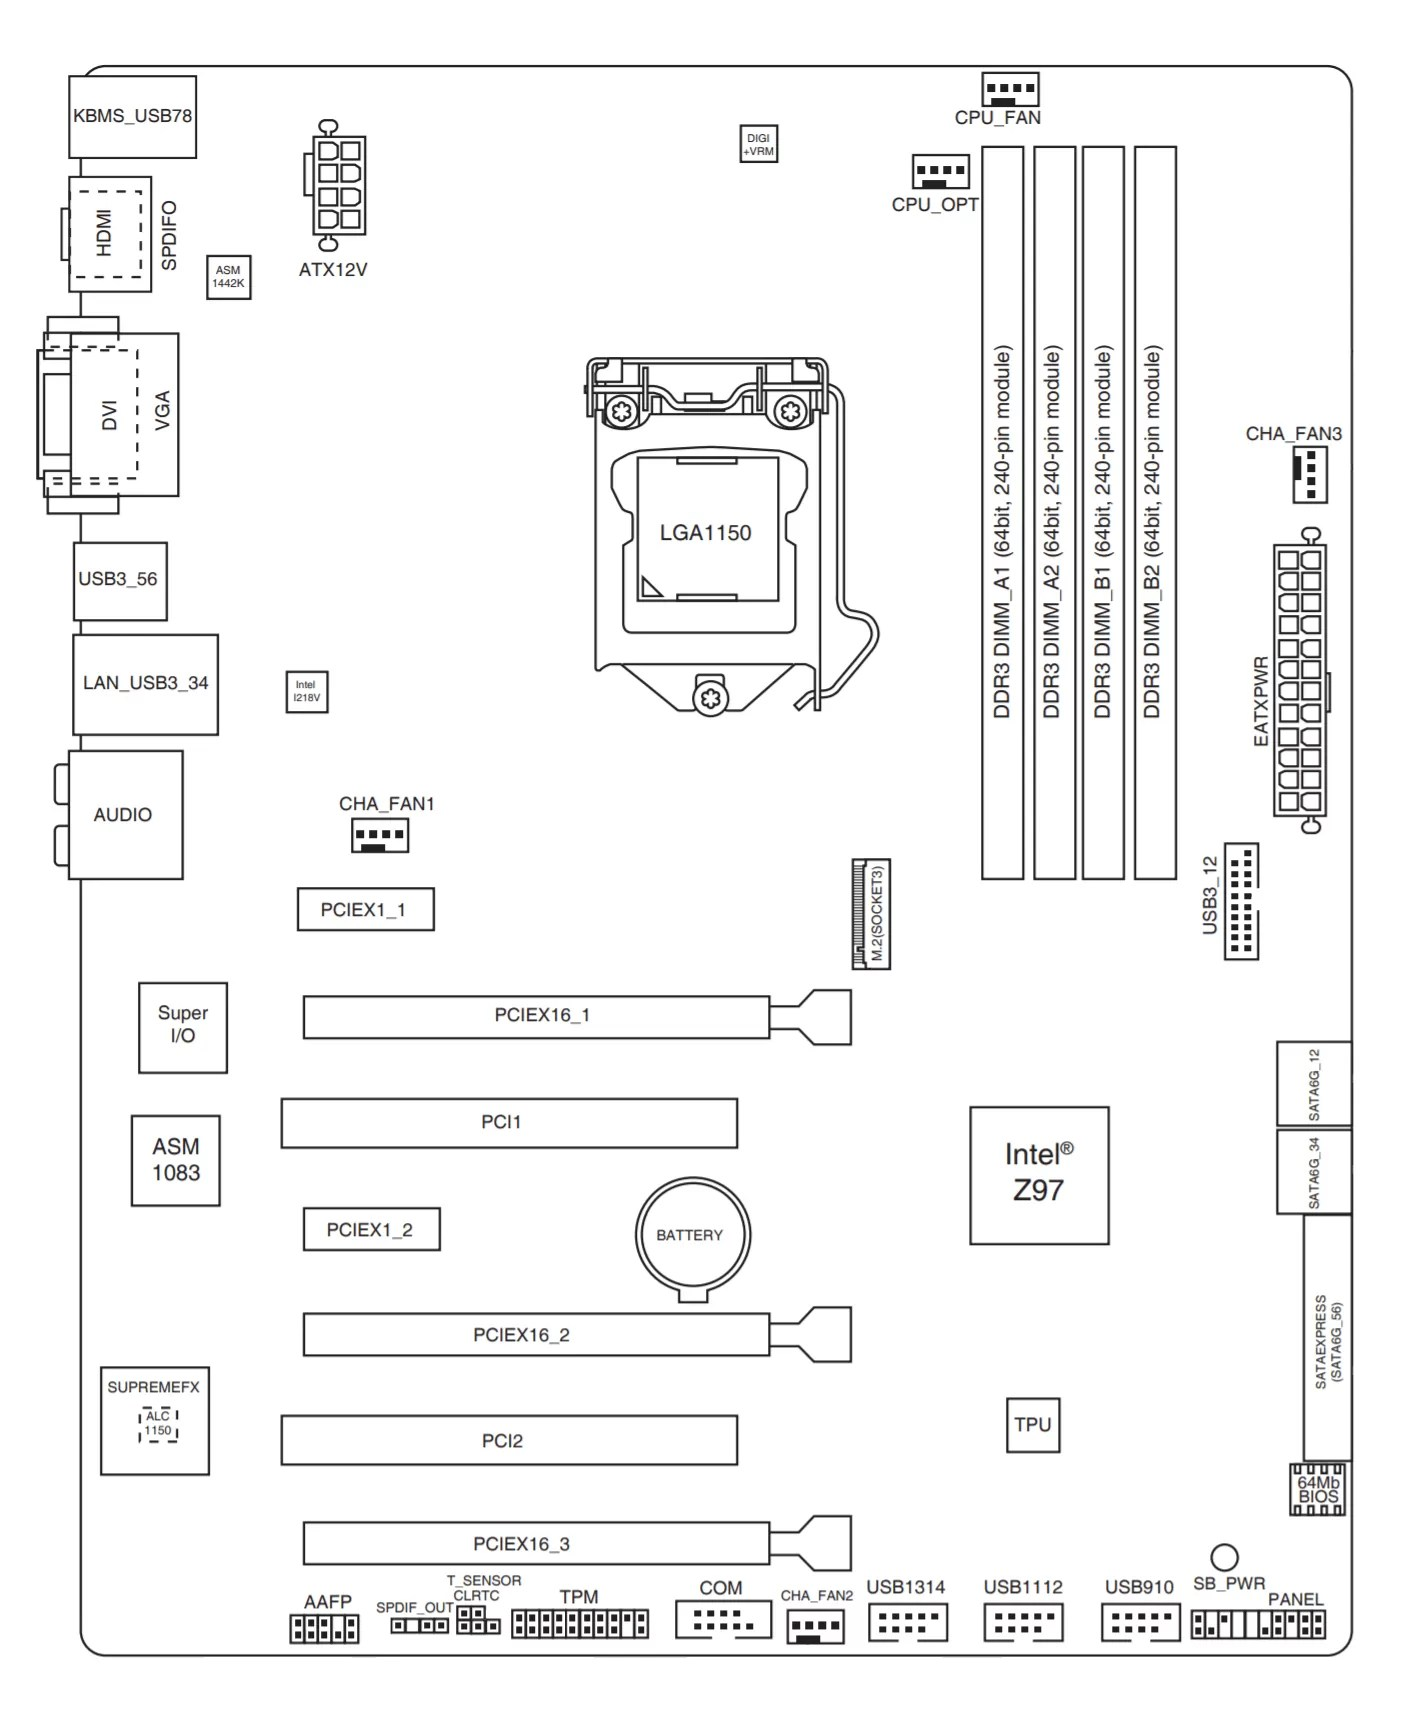 How To Draw A Motherboard